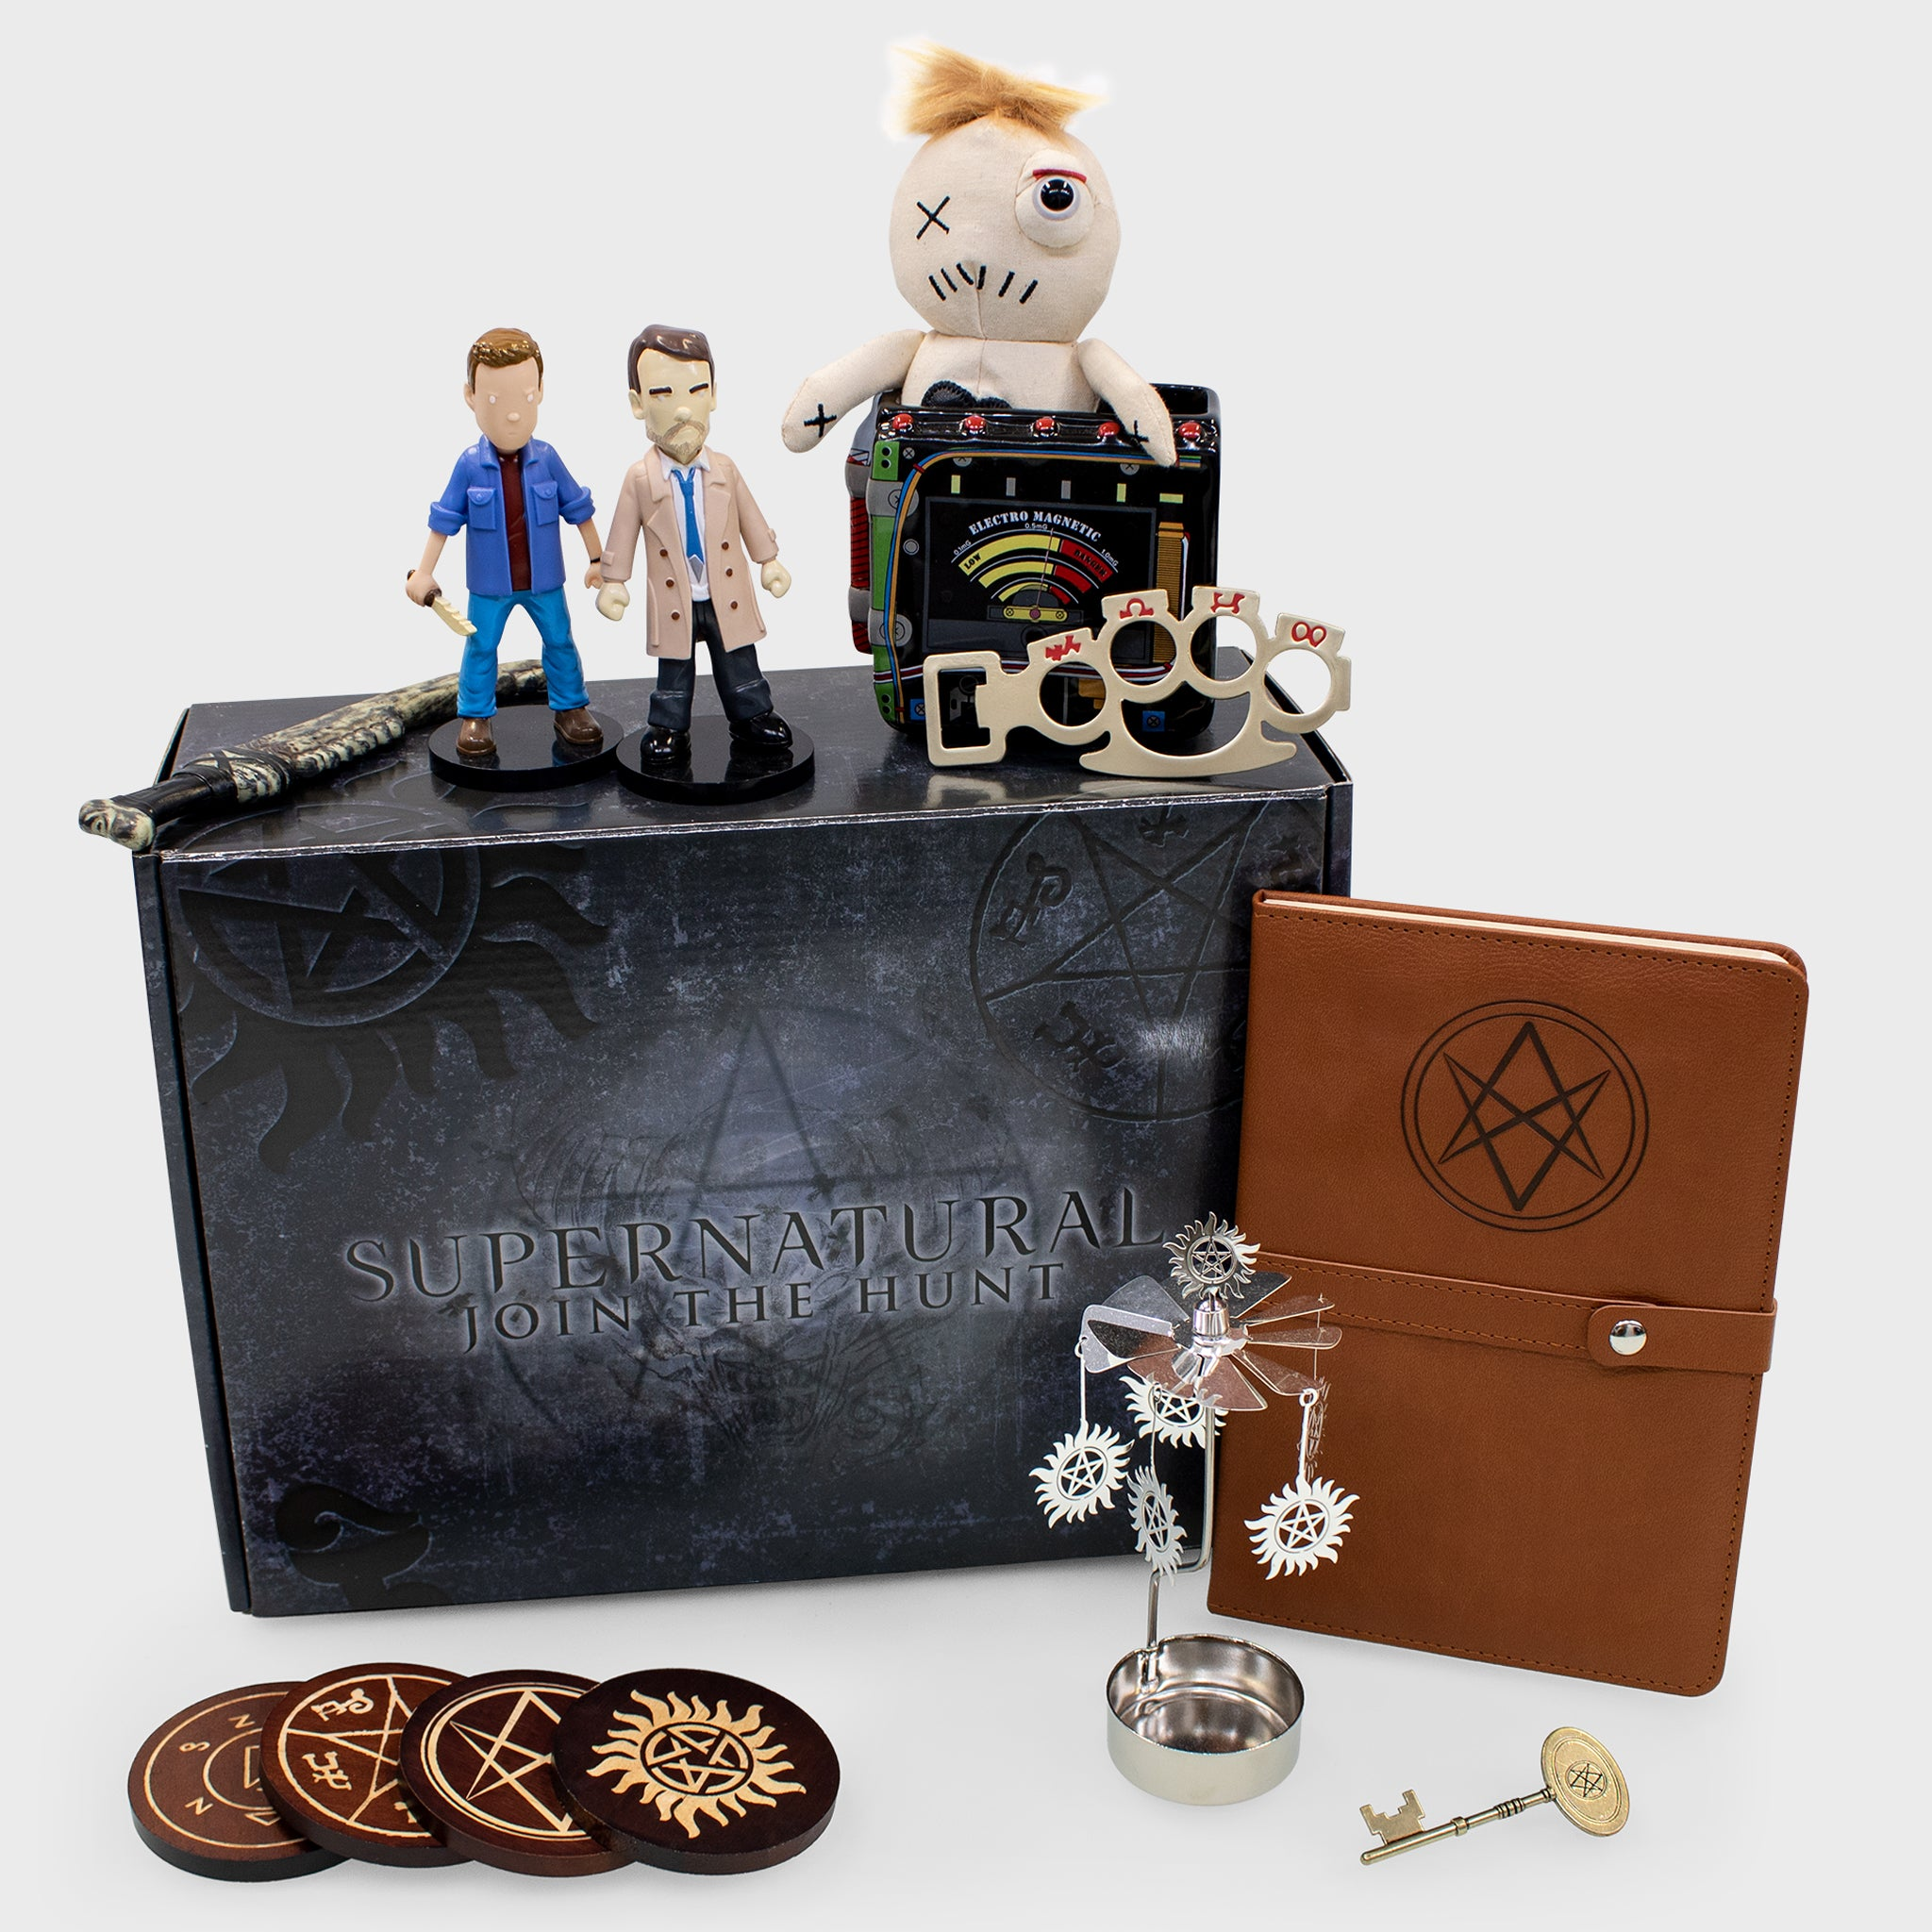 supernatural box subscription quarterly dean winchester sam winchester castiel collectible exclusive fans spn spnfamily culturefly